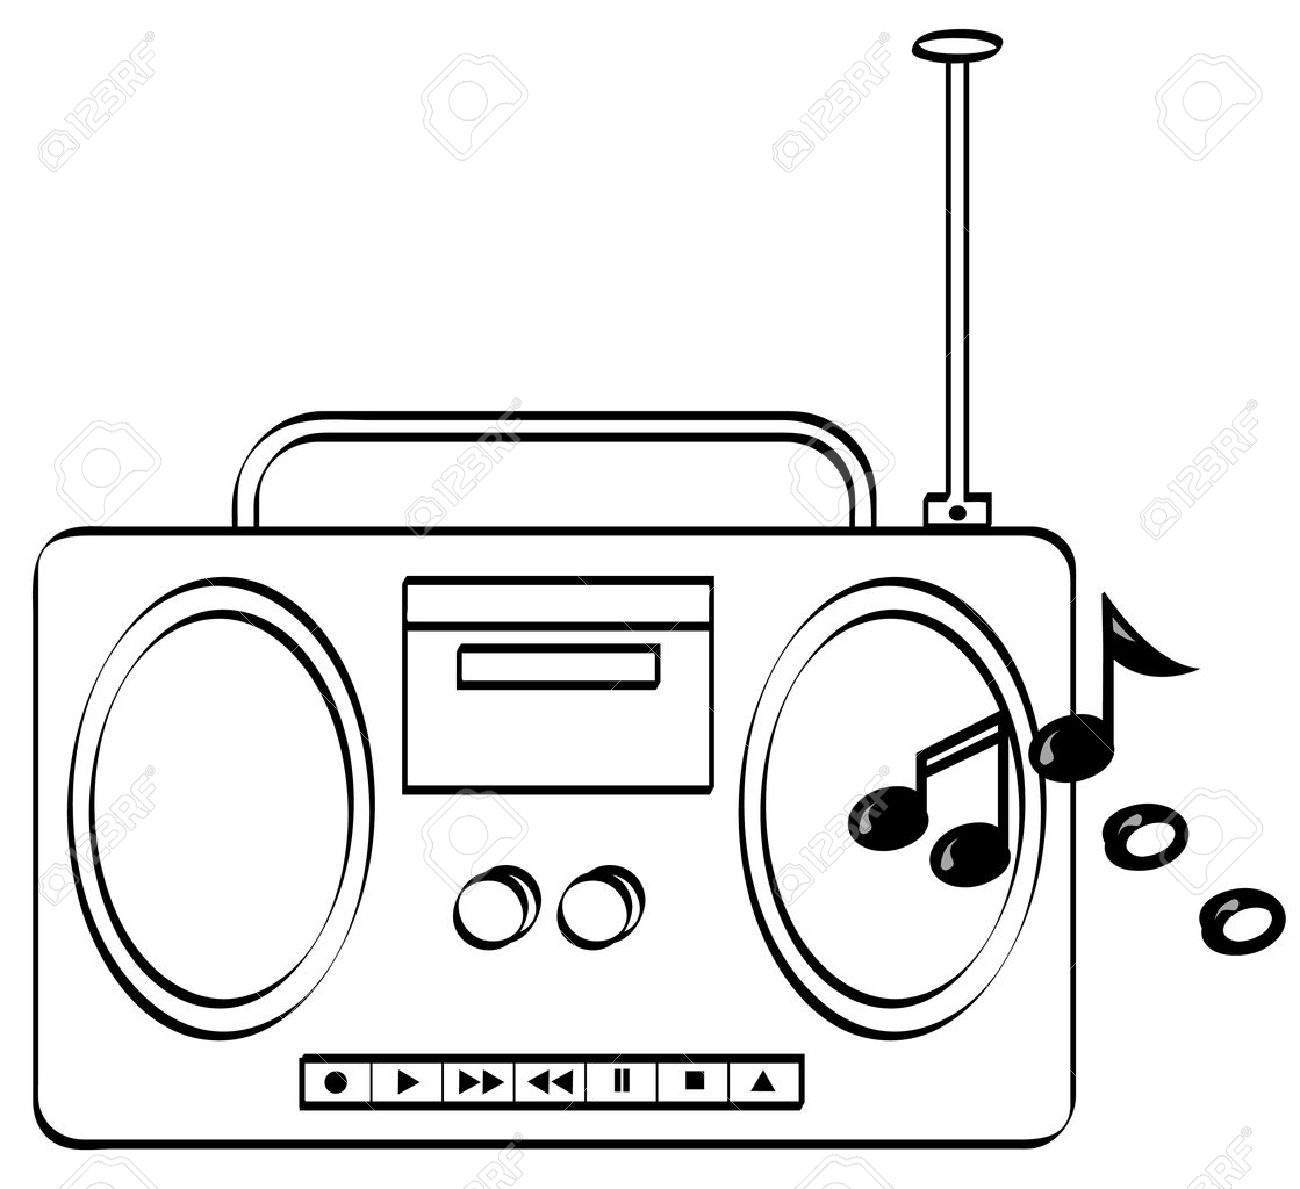 Radio Clipart Black And White 5 Clipart Station